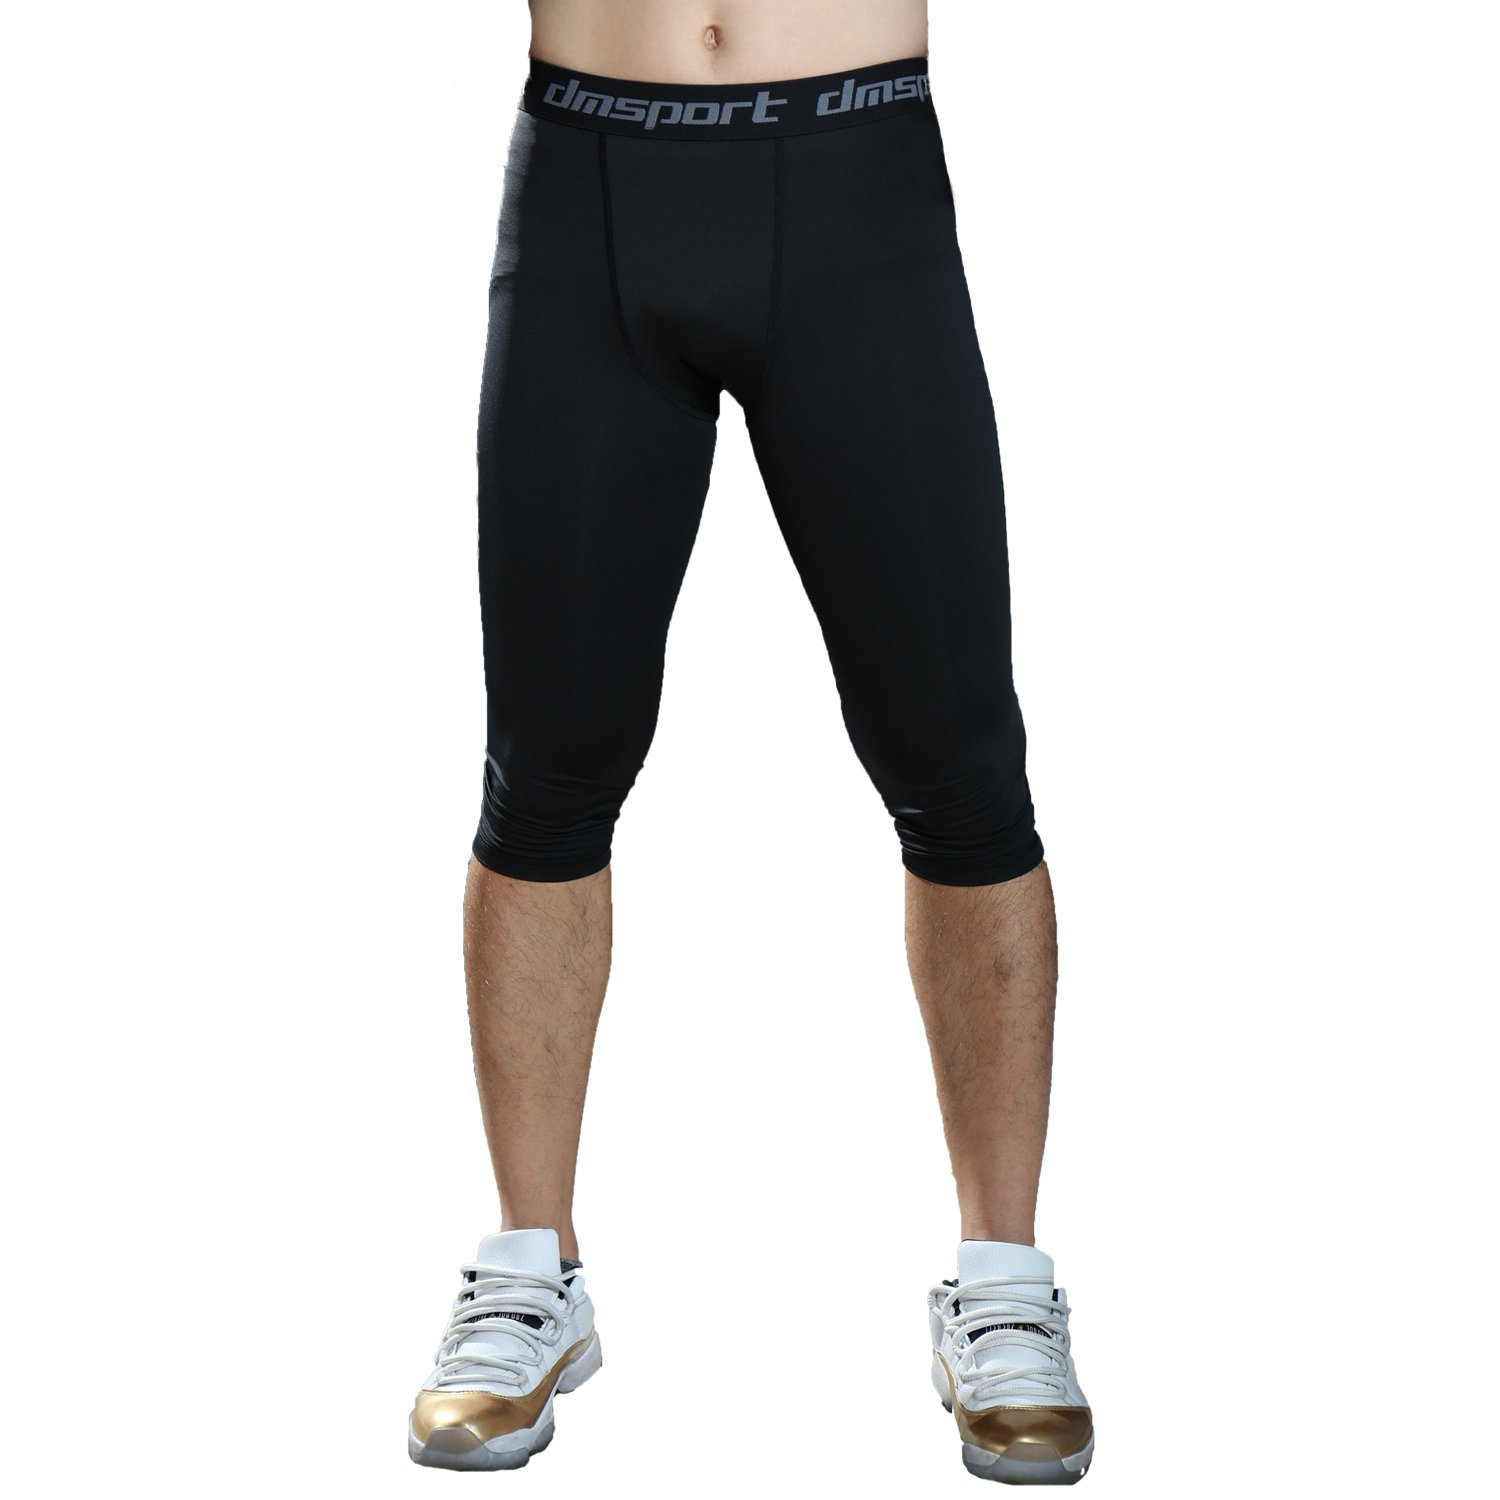 Men's Compression Fitness Pants Cool Dry Running Workout Tights Leggings Fittoo